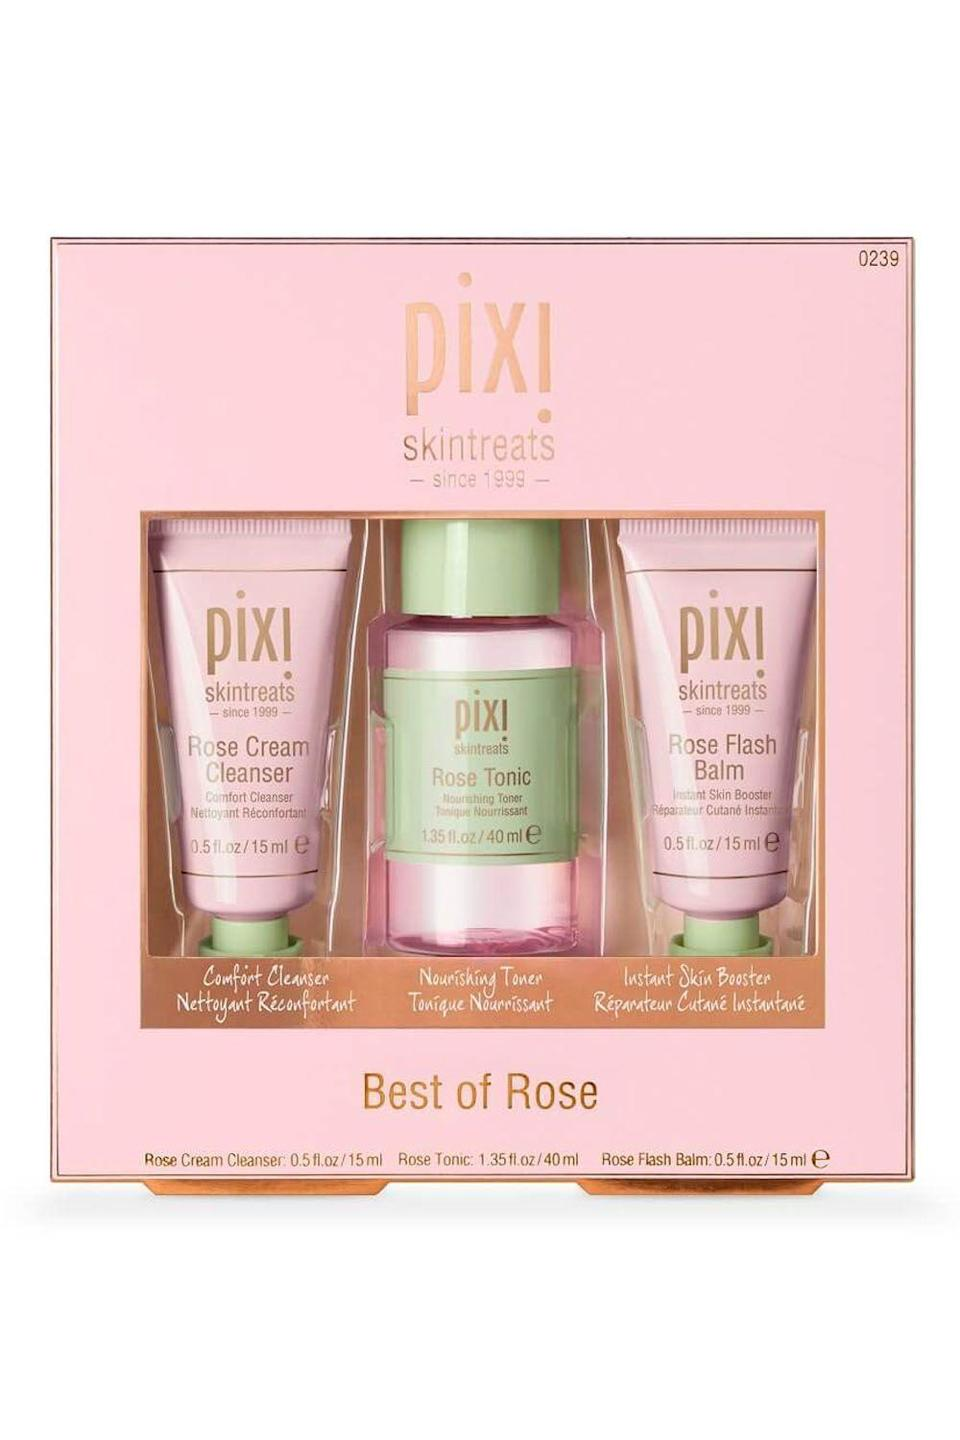 """<p><strong>pixi</strong></p><p>pixibeauty.com</p><p><strong>$22.00</strong></p><p><a href=""""https://go.redirectingat.com?id=74968X1596630&url=https%3A%2F%2Fwww.pixibeauty.com%2Fproducts%2Fbest-of-rose%3Fvariant%3D12418295562336&sref=https%3A%2F%2Fwww.cosmopolitan.com%2Fstyle-beauty%2Fbeauty%2Fg33482166%2Feditor-picks-cosmo-klarna-hauliday-2020%2F"""" rel=""""nofollow noopener"""" target=""""_blank"""" data-ylk=""""slk:Shop Now"""" class=""""link rapid-noclick-resp"""">Shop Now</a></p><p>""""I can't wait to get my skin back under control after a super-weird summer, so being able to slather on some of the best that Pixi has to offer—a cream <a href=""""https://www.cosmopolitan.com/style-beauty/beauty/advice/a5246/face-wash/"""" rel=""""nofollow noopener"""" target=""""_blank"""" data-ylk=""""slk:cleanser"""" class=""""link rapid-noclick-resp"""">cleanser</a>, a toner, and a facial balm—all in one kit, is <strong>legit going to bring my skin back to life.""""</strong>—<em>Jillian Sellers, photo producer and editor</em></p><p><strong><strong><strong>💫</strong></strong>PROMOTION:</strong> Get 20% off the Best of Pixi Kit with the code <strong>KLARNAHAULIDAY</strong>.<br></p>"""